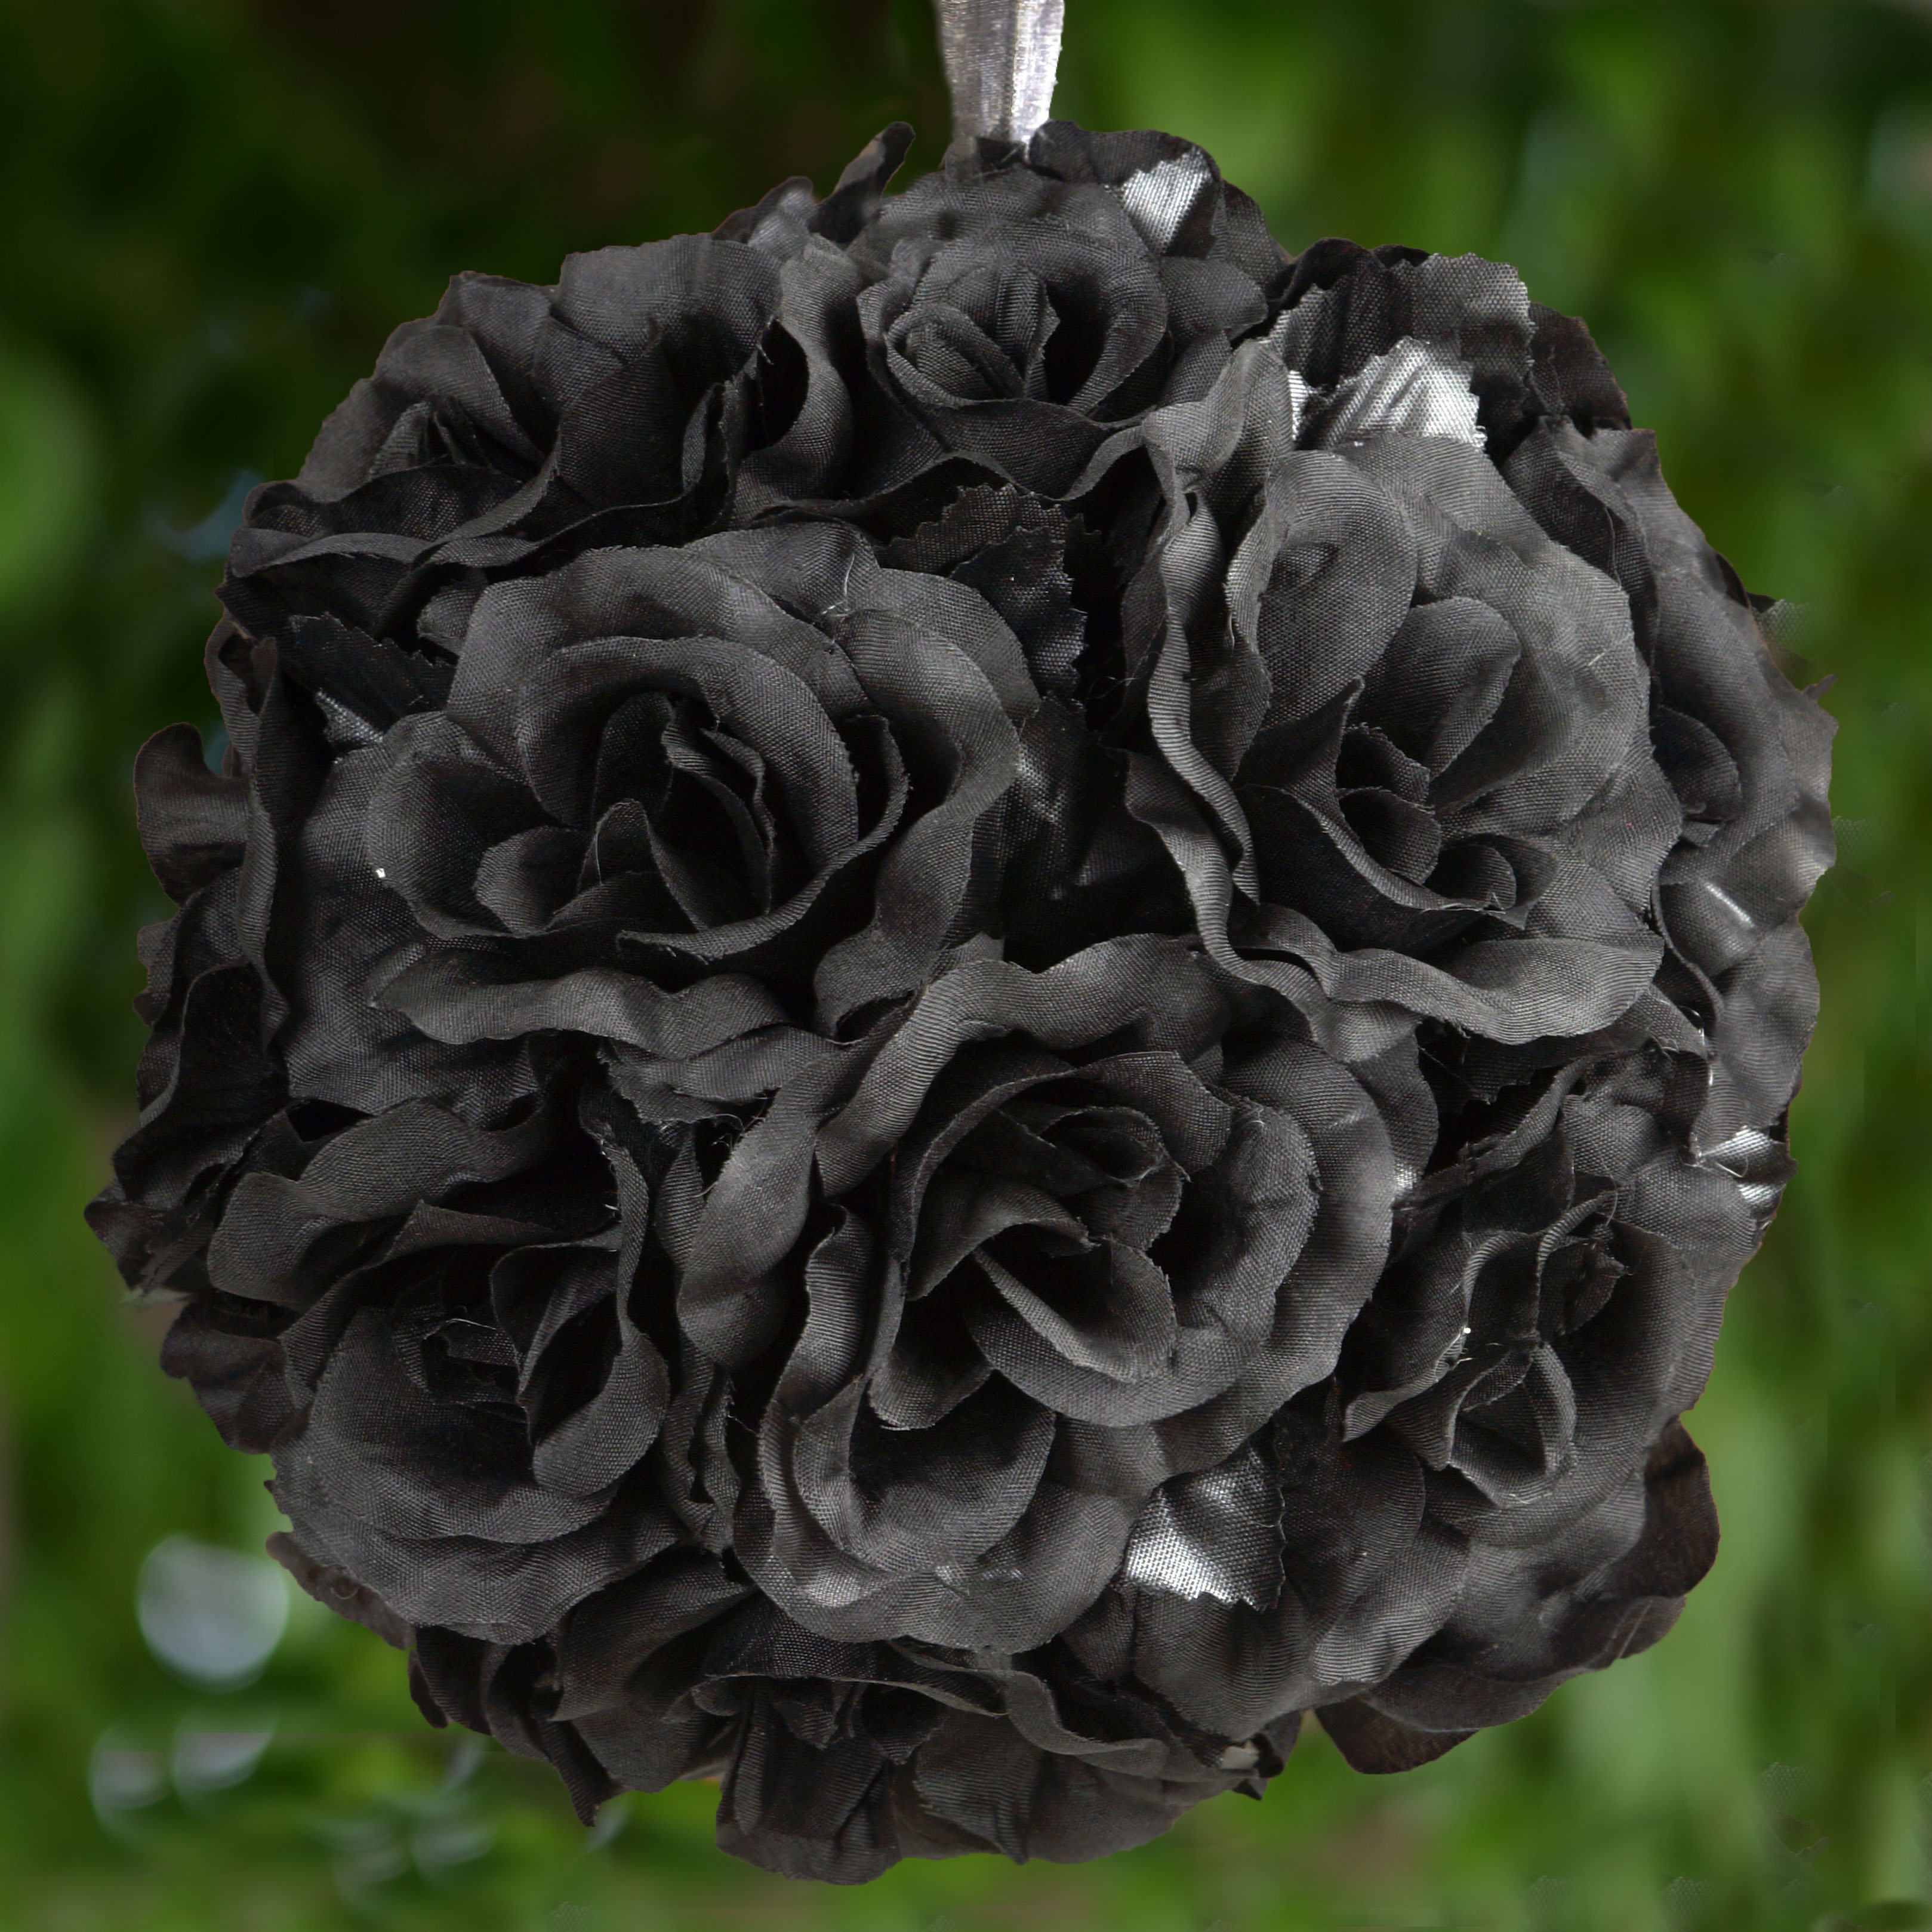 Efavormart 4 PCS Rose Pomander Silk Flower Balls for DIY Wedding Bouquets Centerpieces Arrangements Decorations Wholesale Supplies